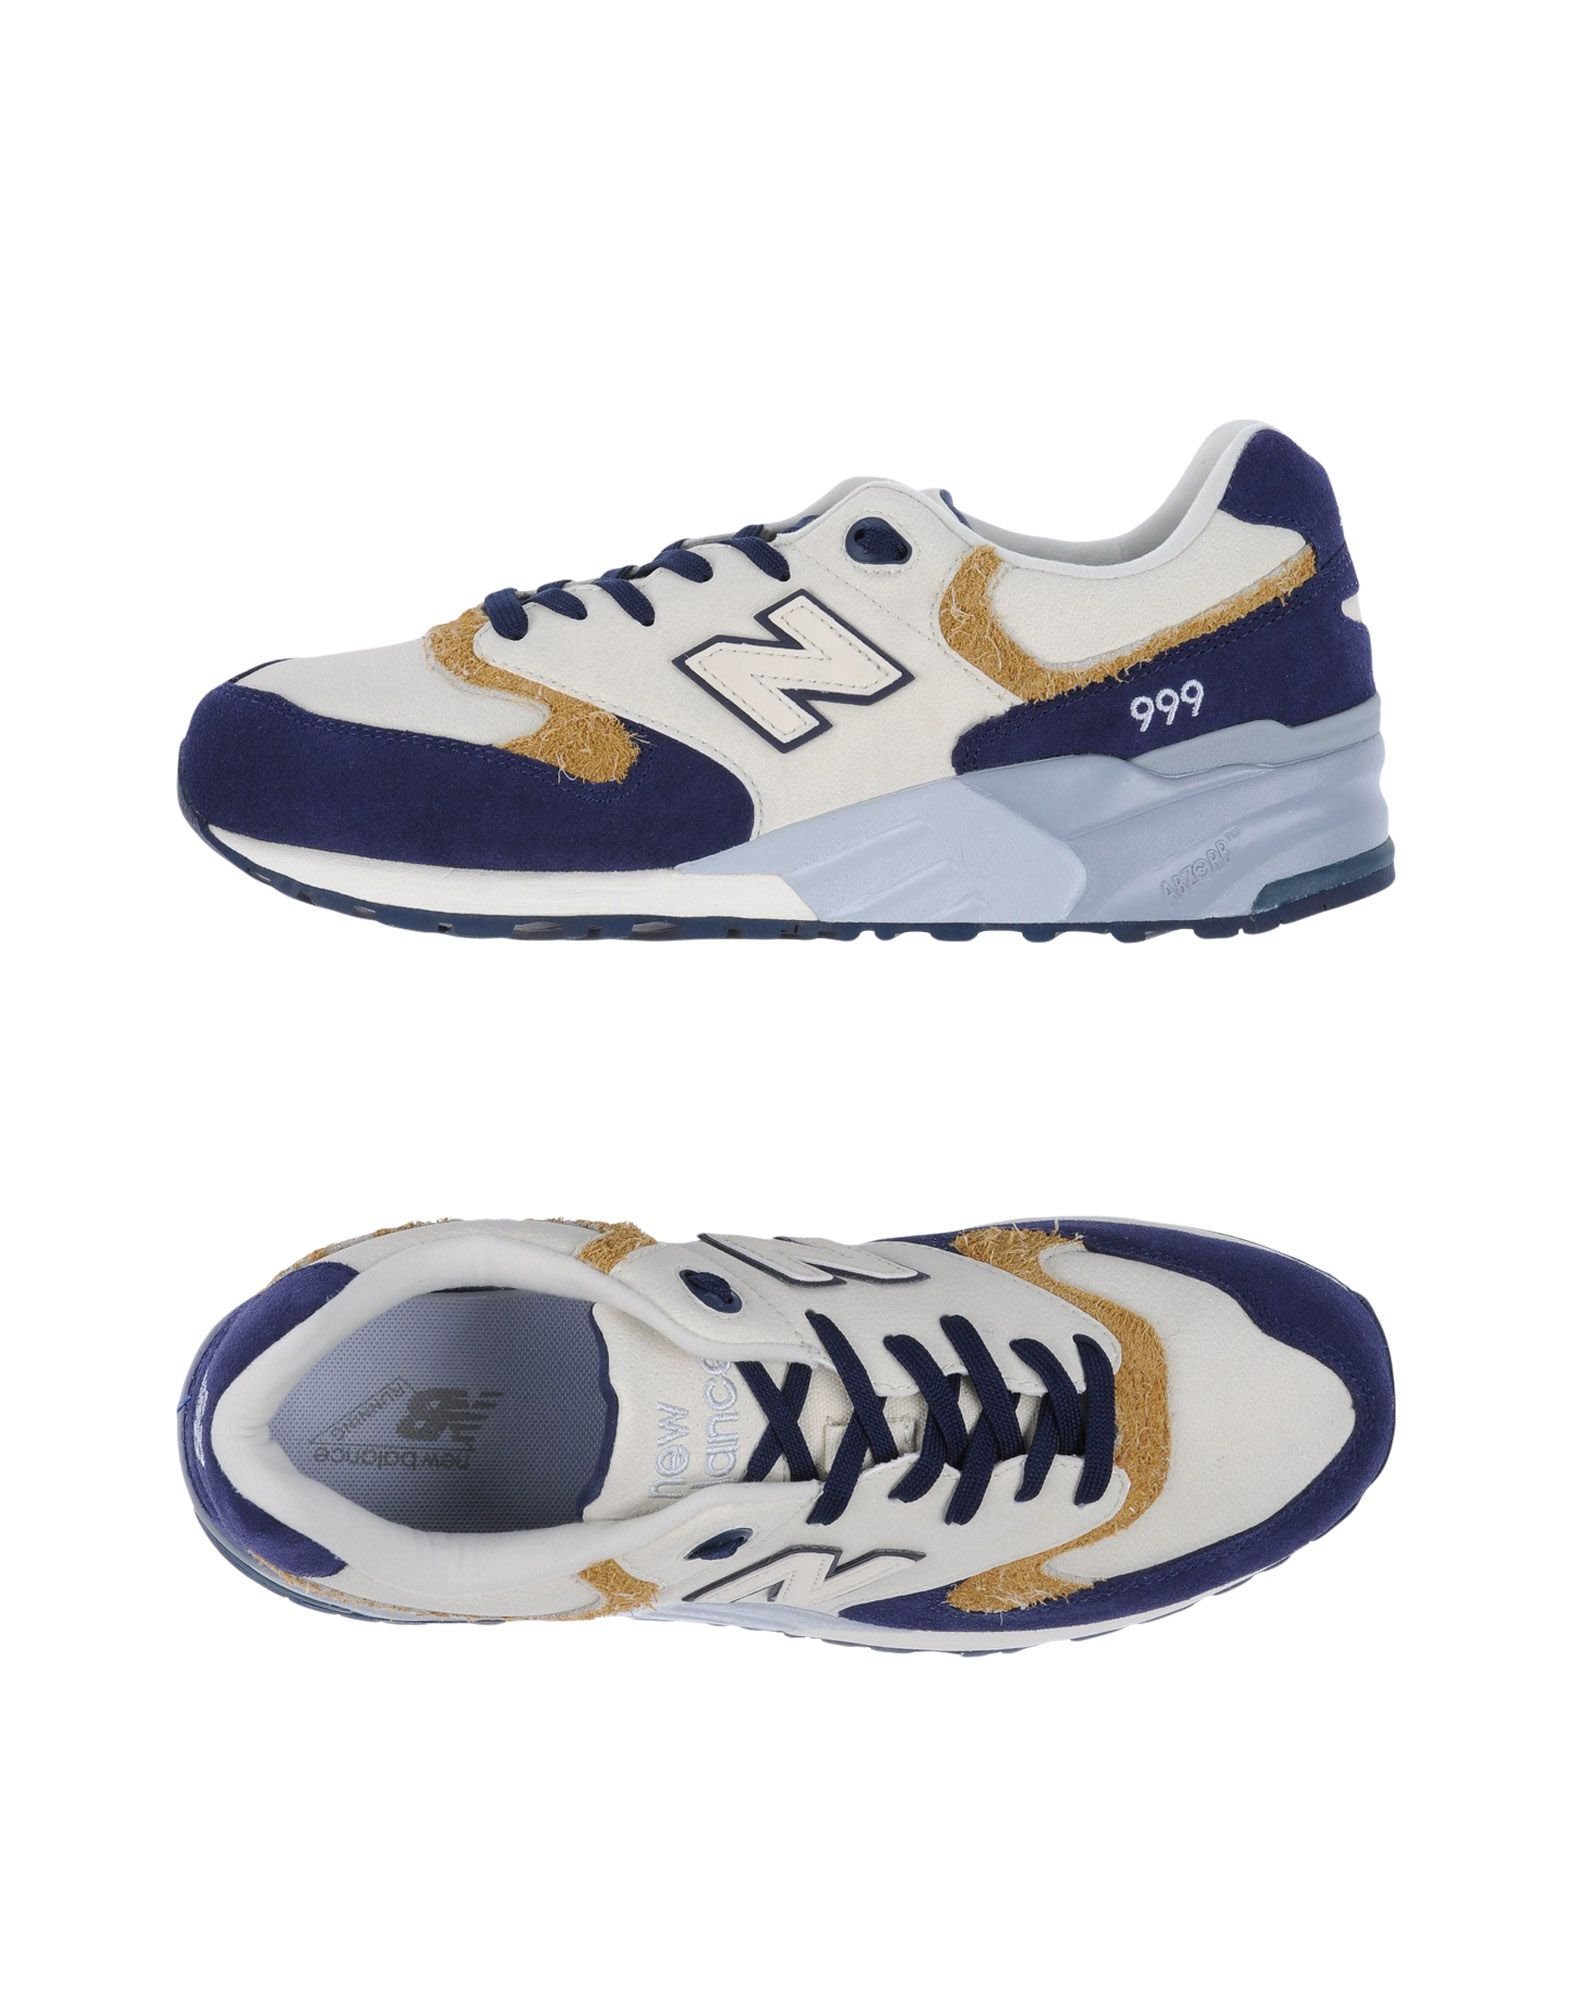 Rabatt echte Schuhe New Balance 999 Seasonal  11195772XR